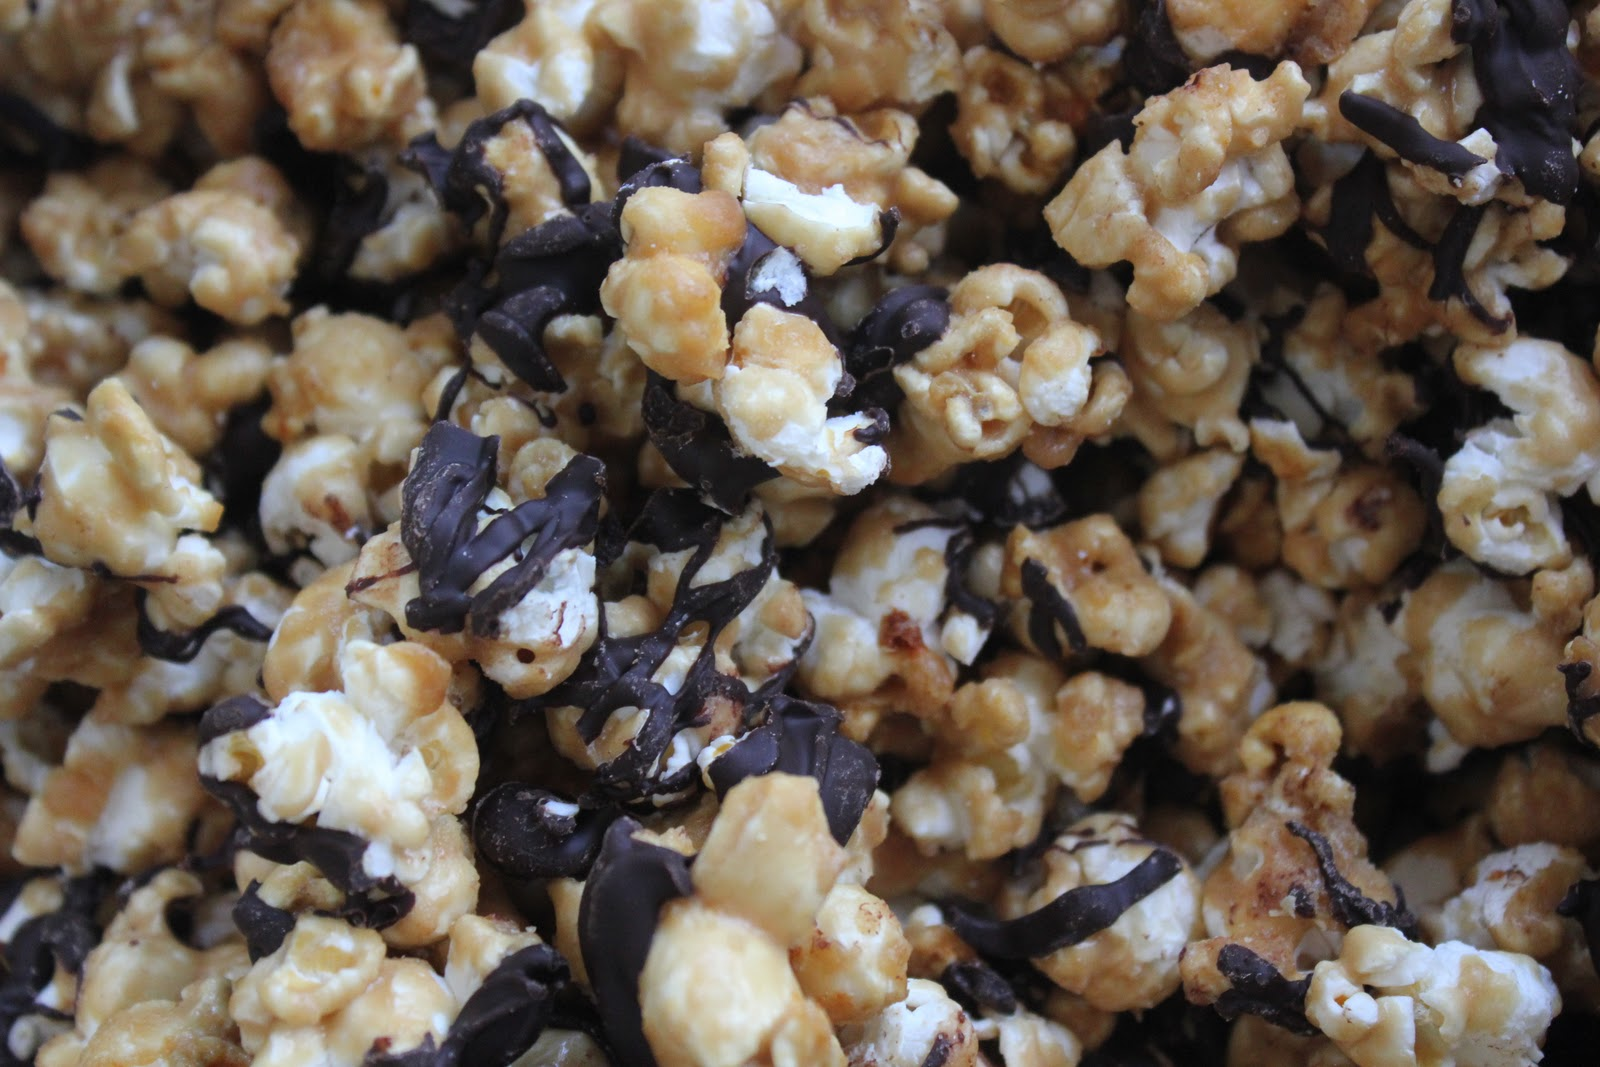 Near to Nothing: Chocolate Covered Caramel Corn